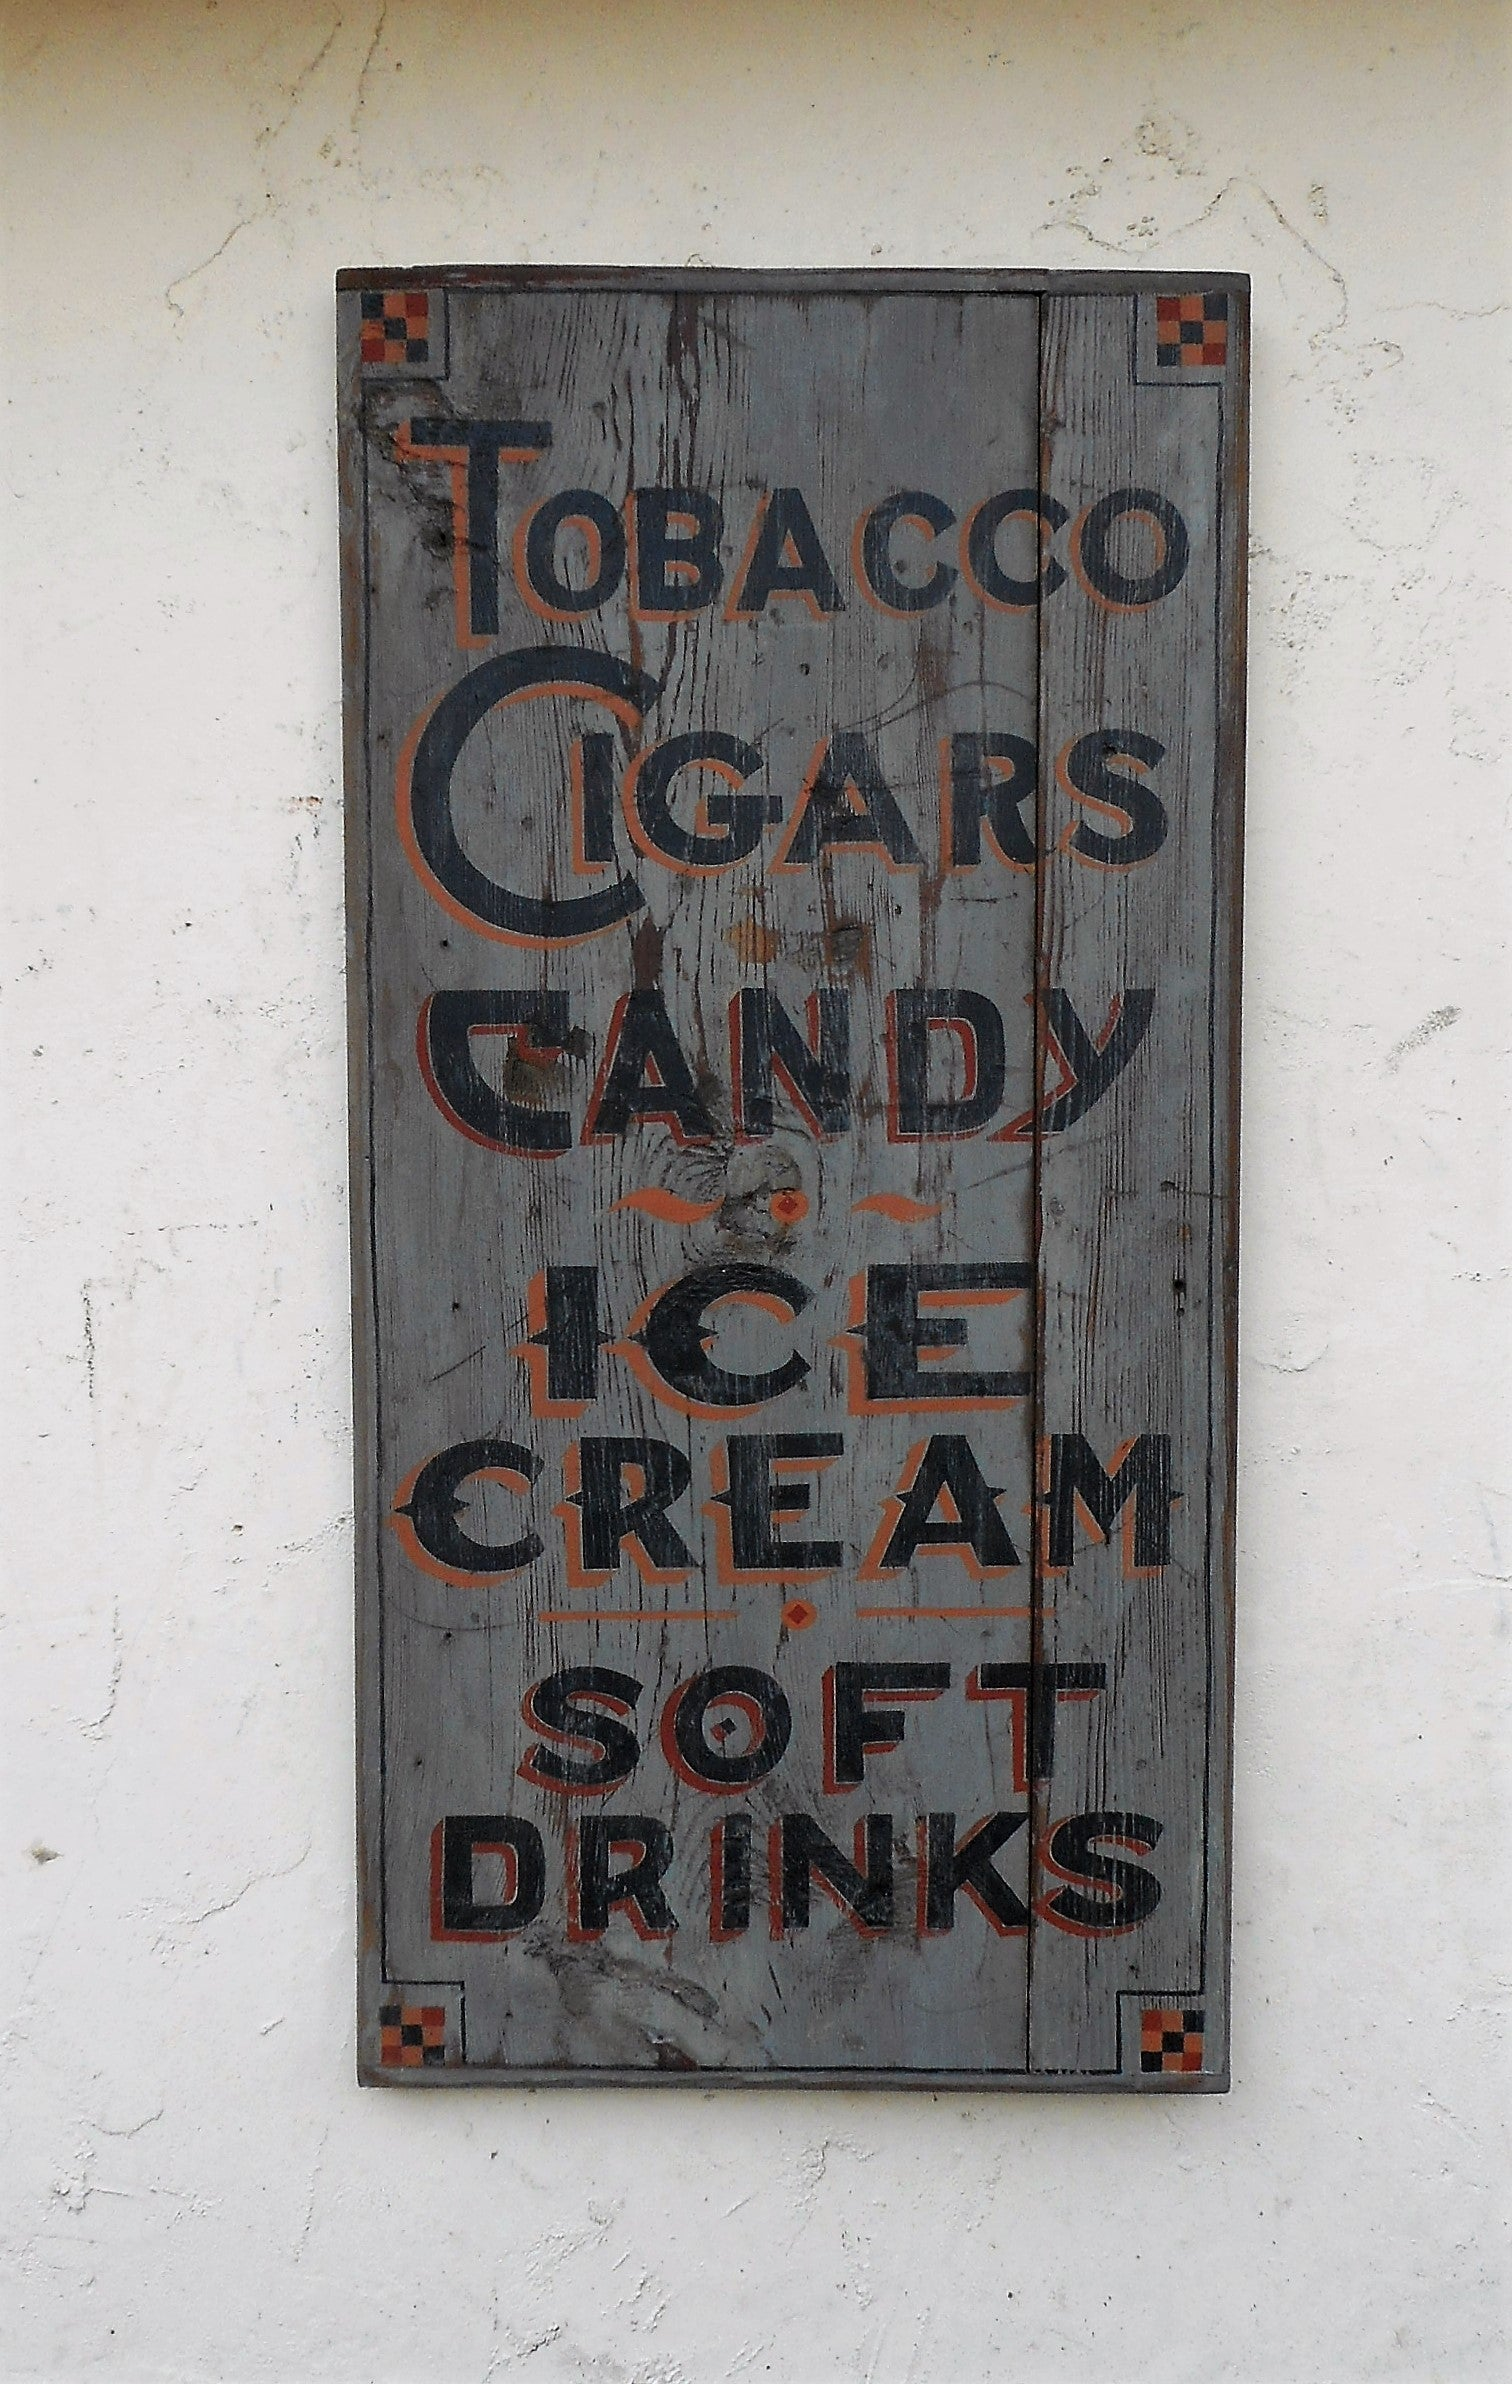 Tobacco-Cigars-Candy